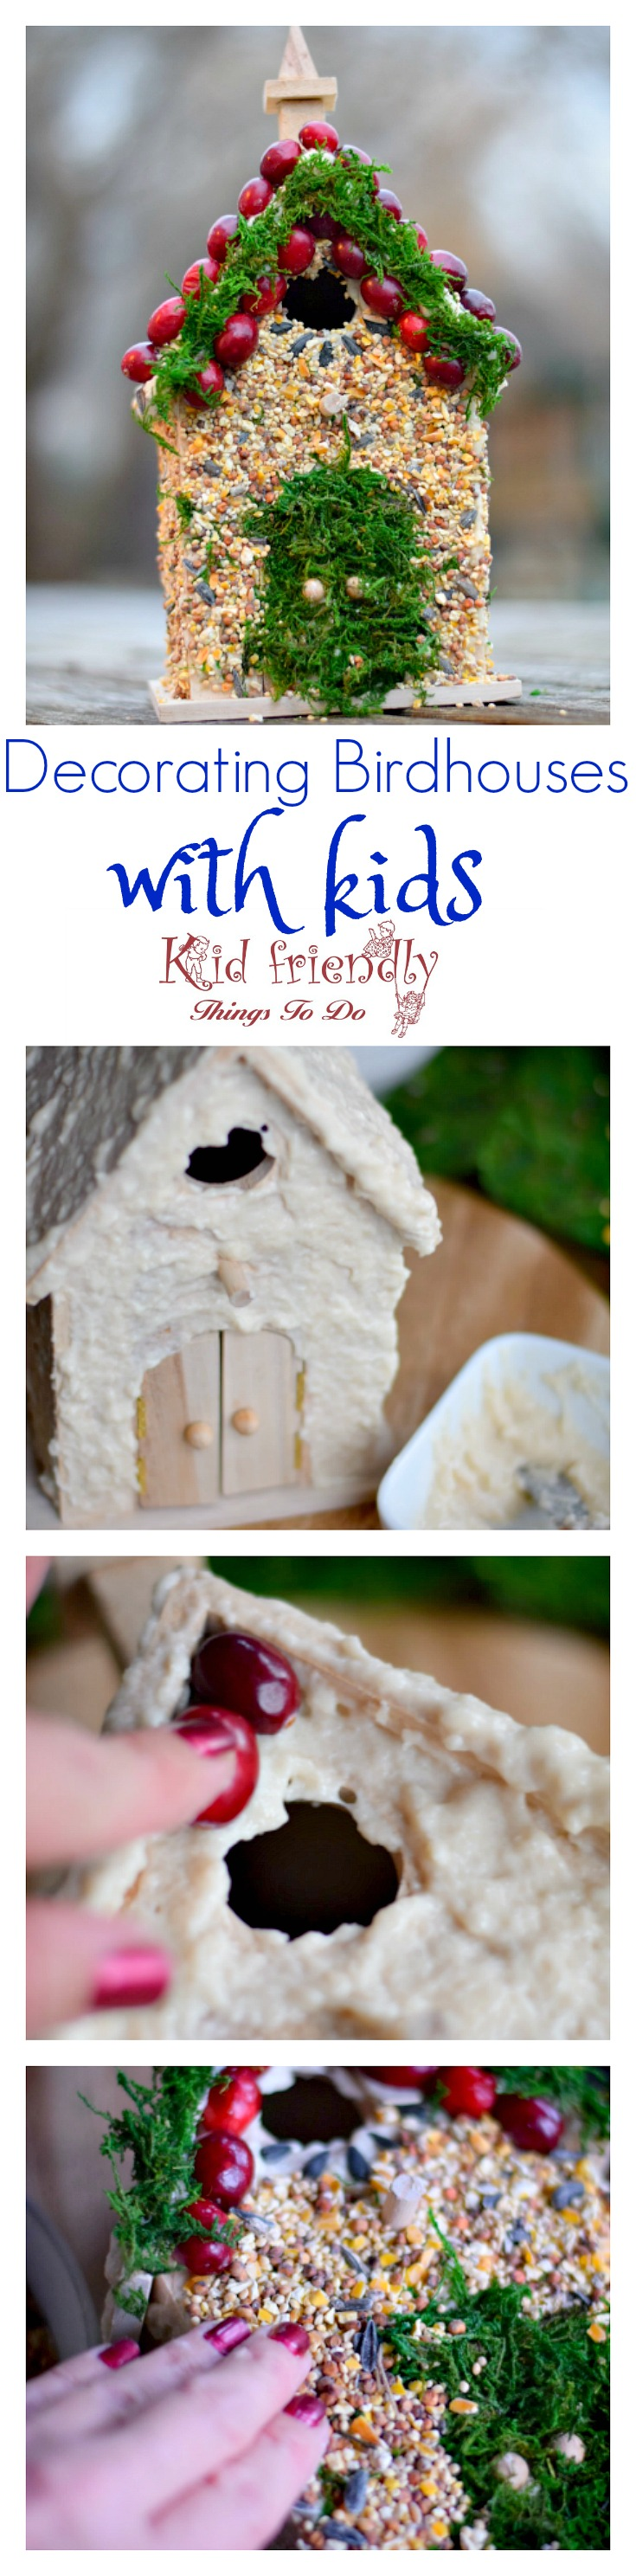 Decorating birdhouses with edible bird seed glue craft decorating birdhouses with kids is fun and easy to do i have a simple diy forumfinder Gallery